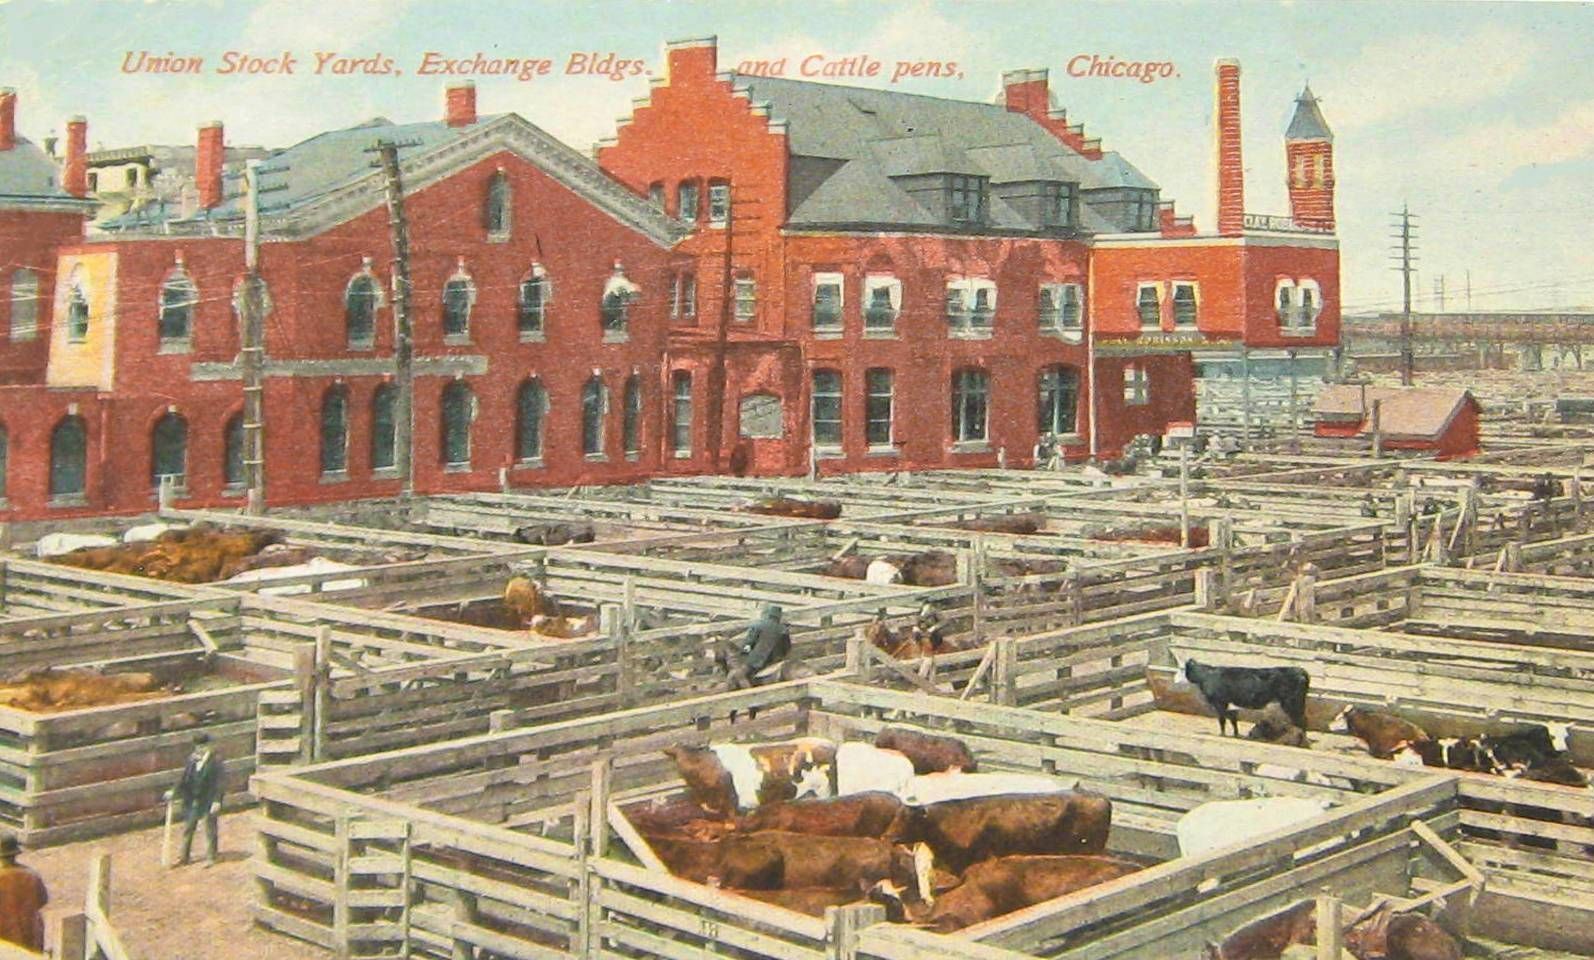 Pin by Vic Ooton on 19th Century Cattle Industry. | Pinterest | Chicago